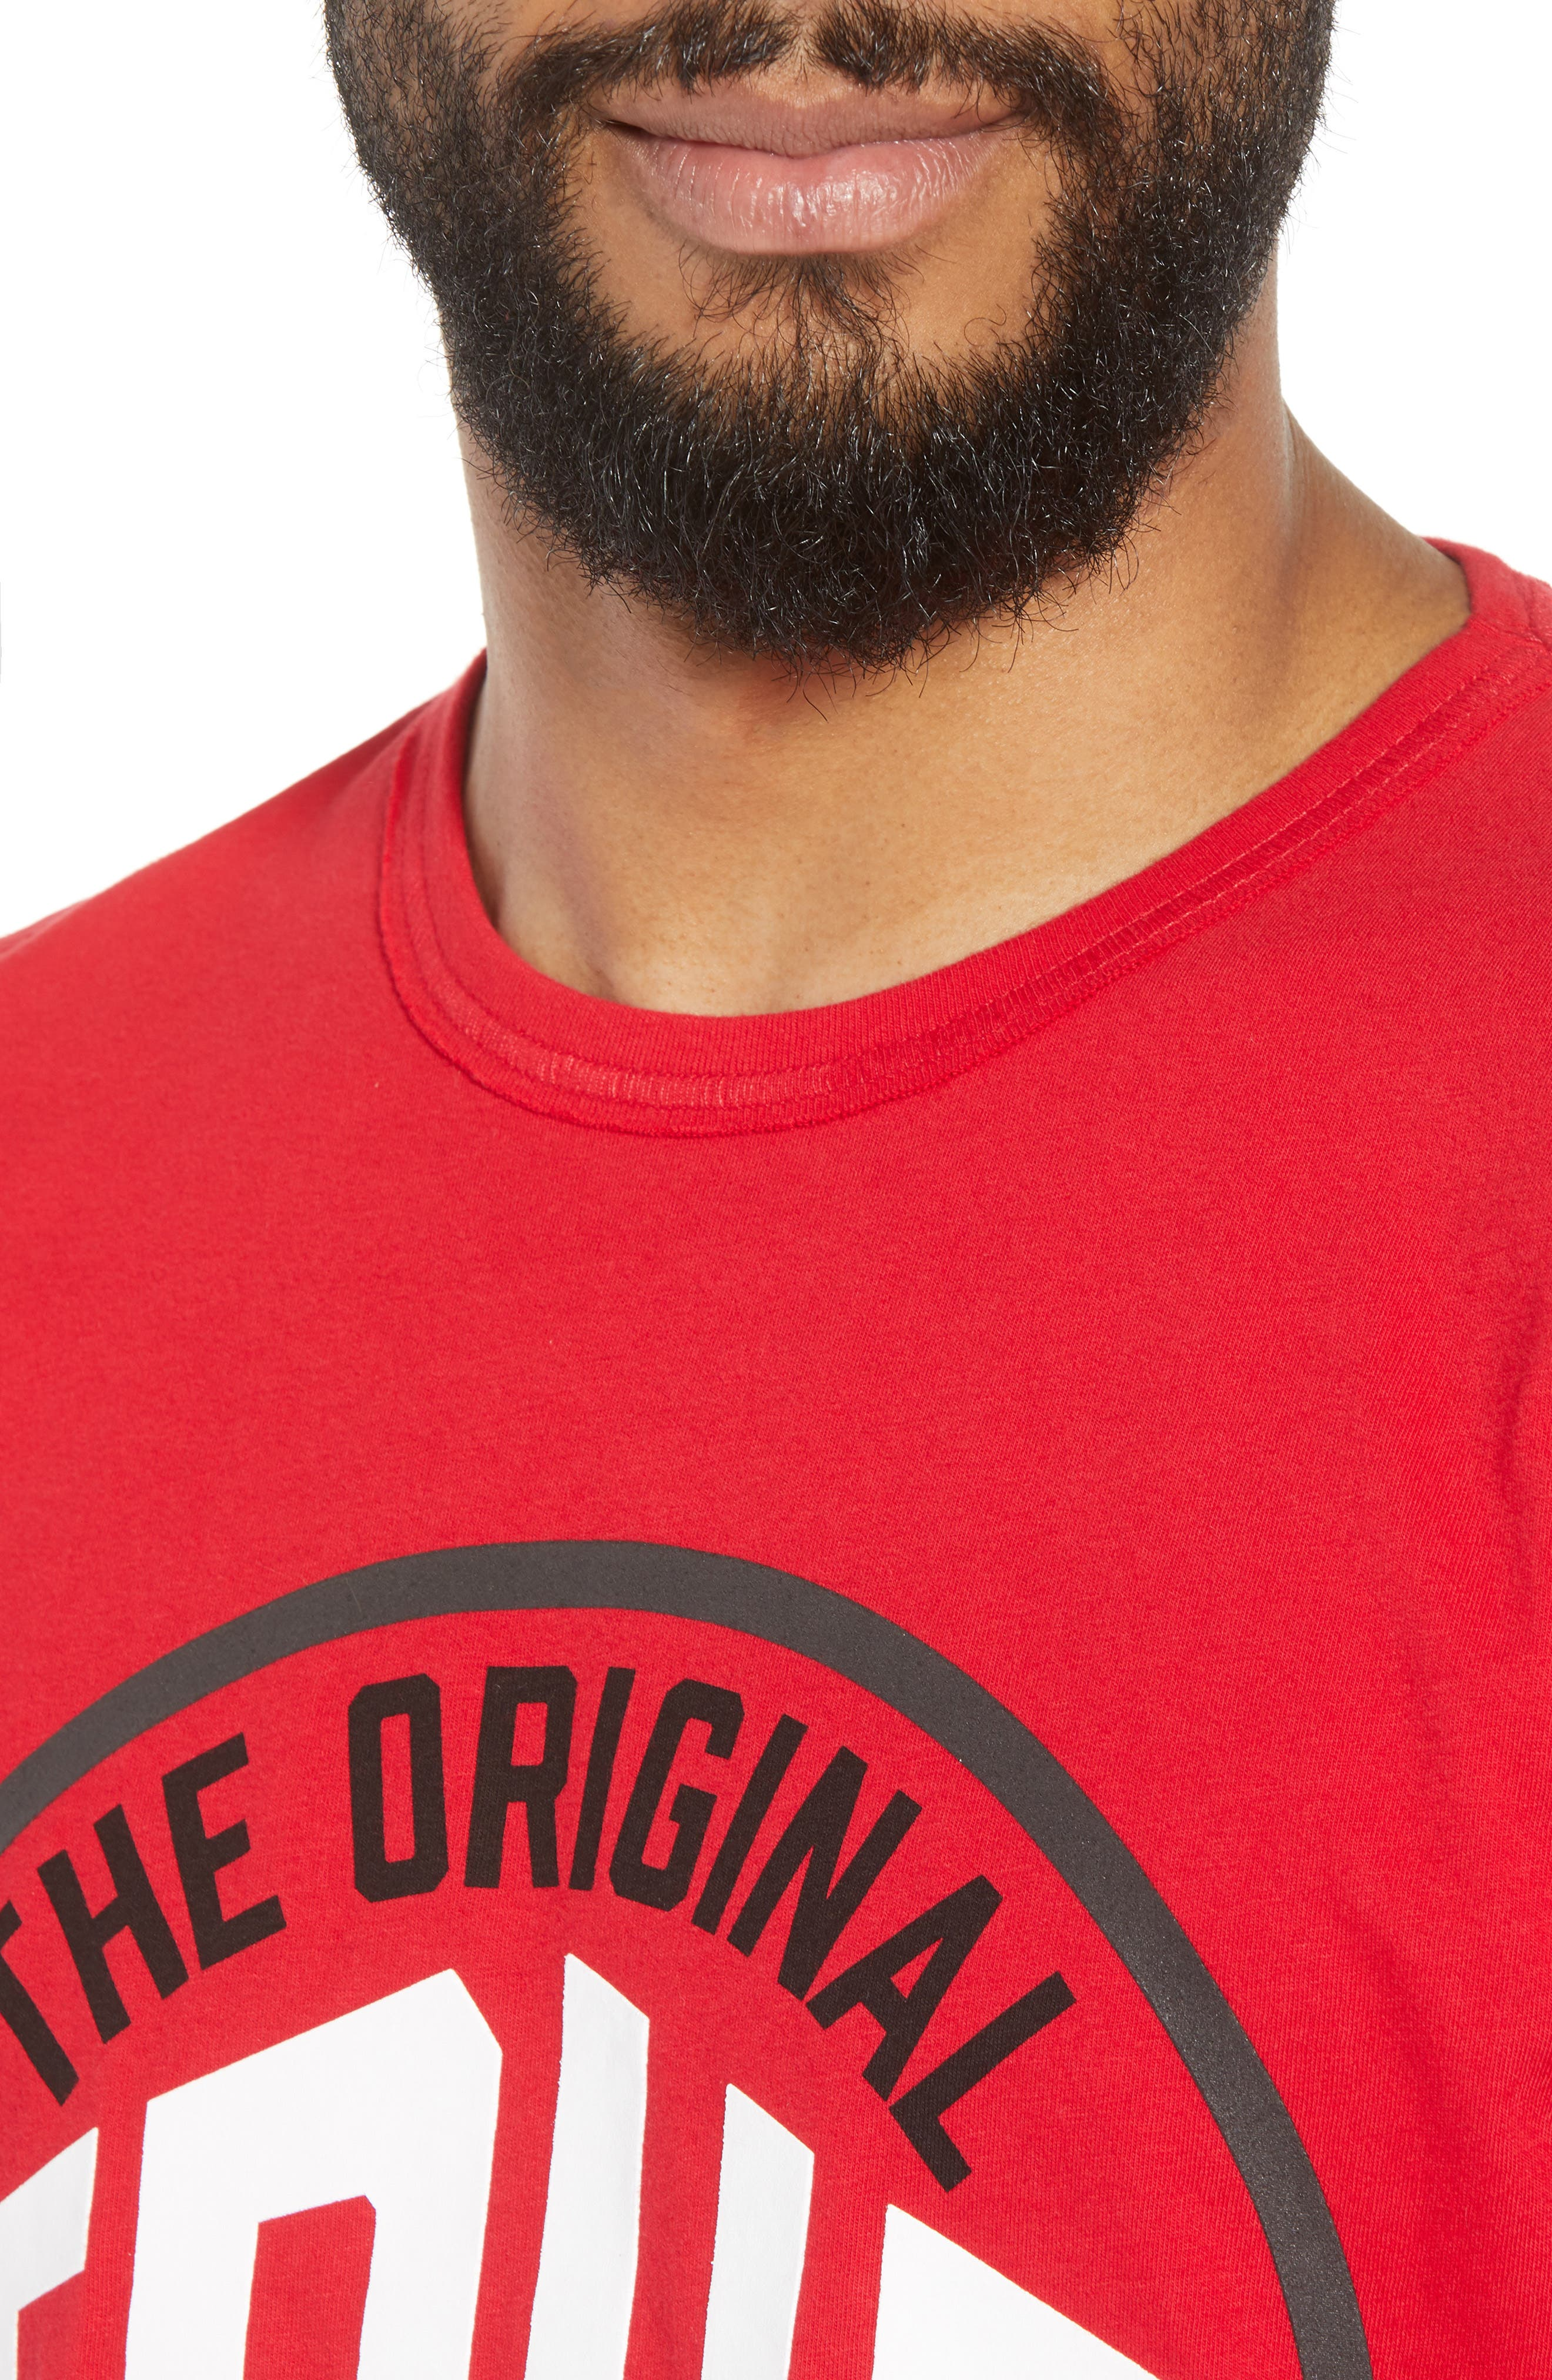 Outfield T-Shirt,                             Alternate thumbnail 4, color,                             True Red